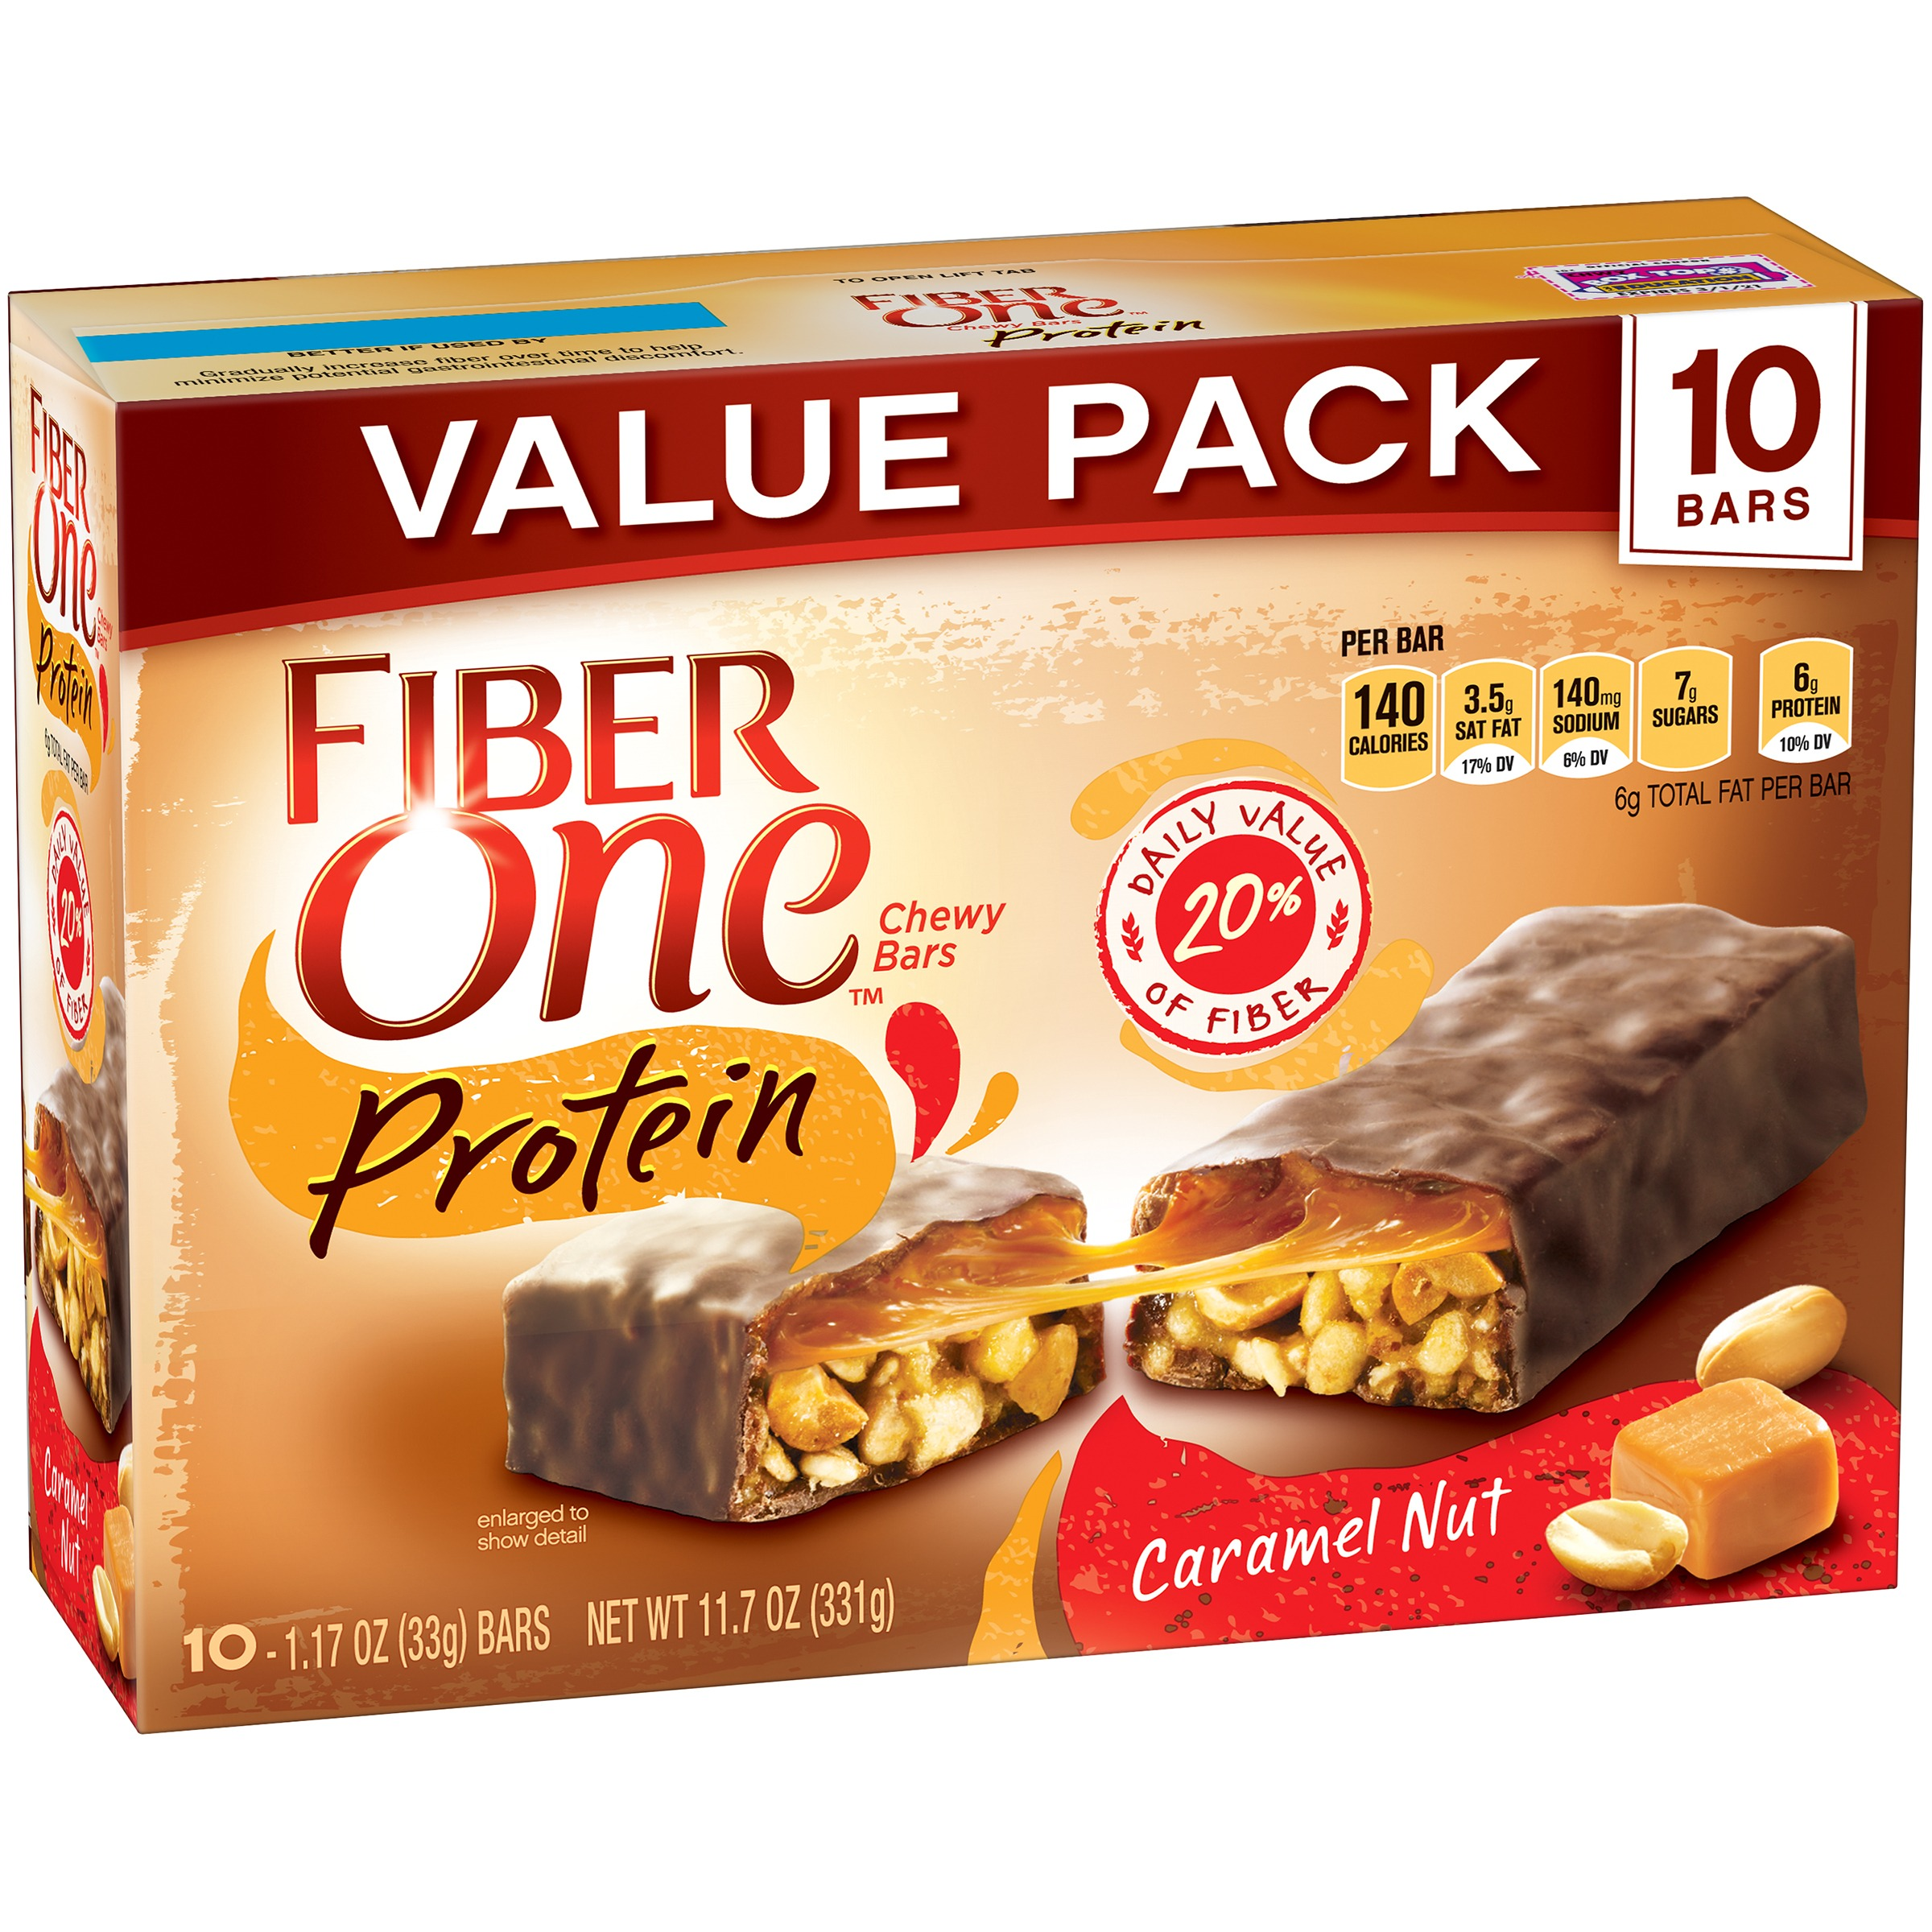 Bars. On the one hand, hearty oats, rich chocolately flavors, thick caramel, and other indulgent flavors will satisfy your craving. On the other hand wait, wasn't there a bar in the other hand?